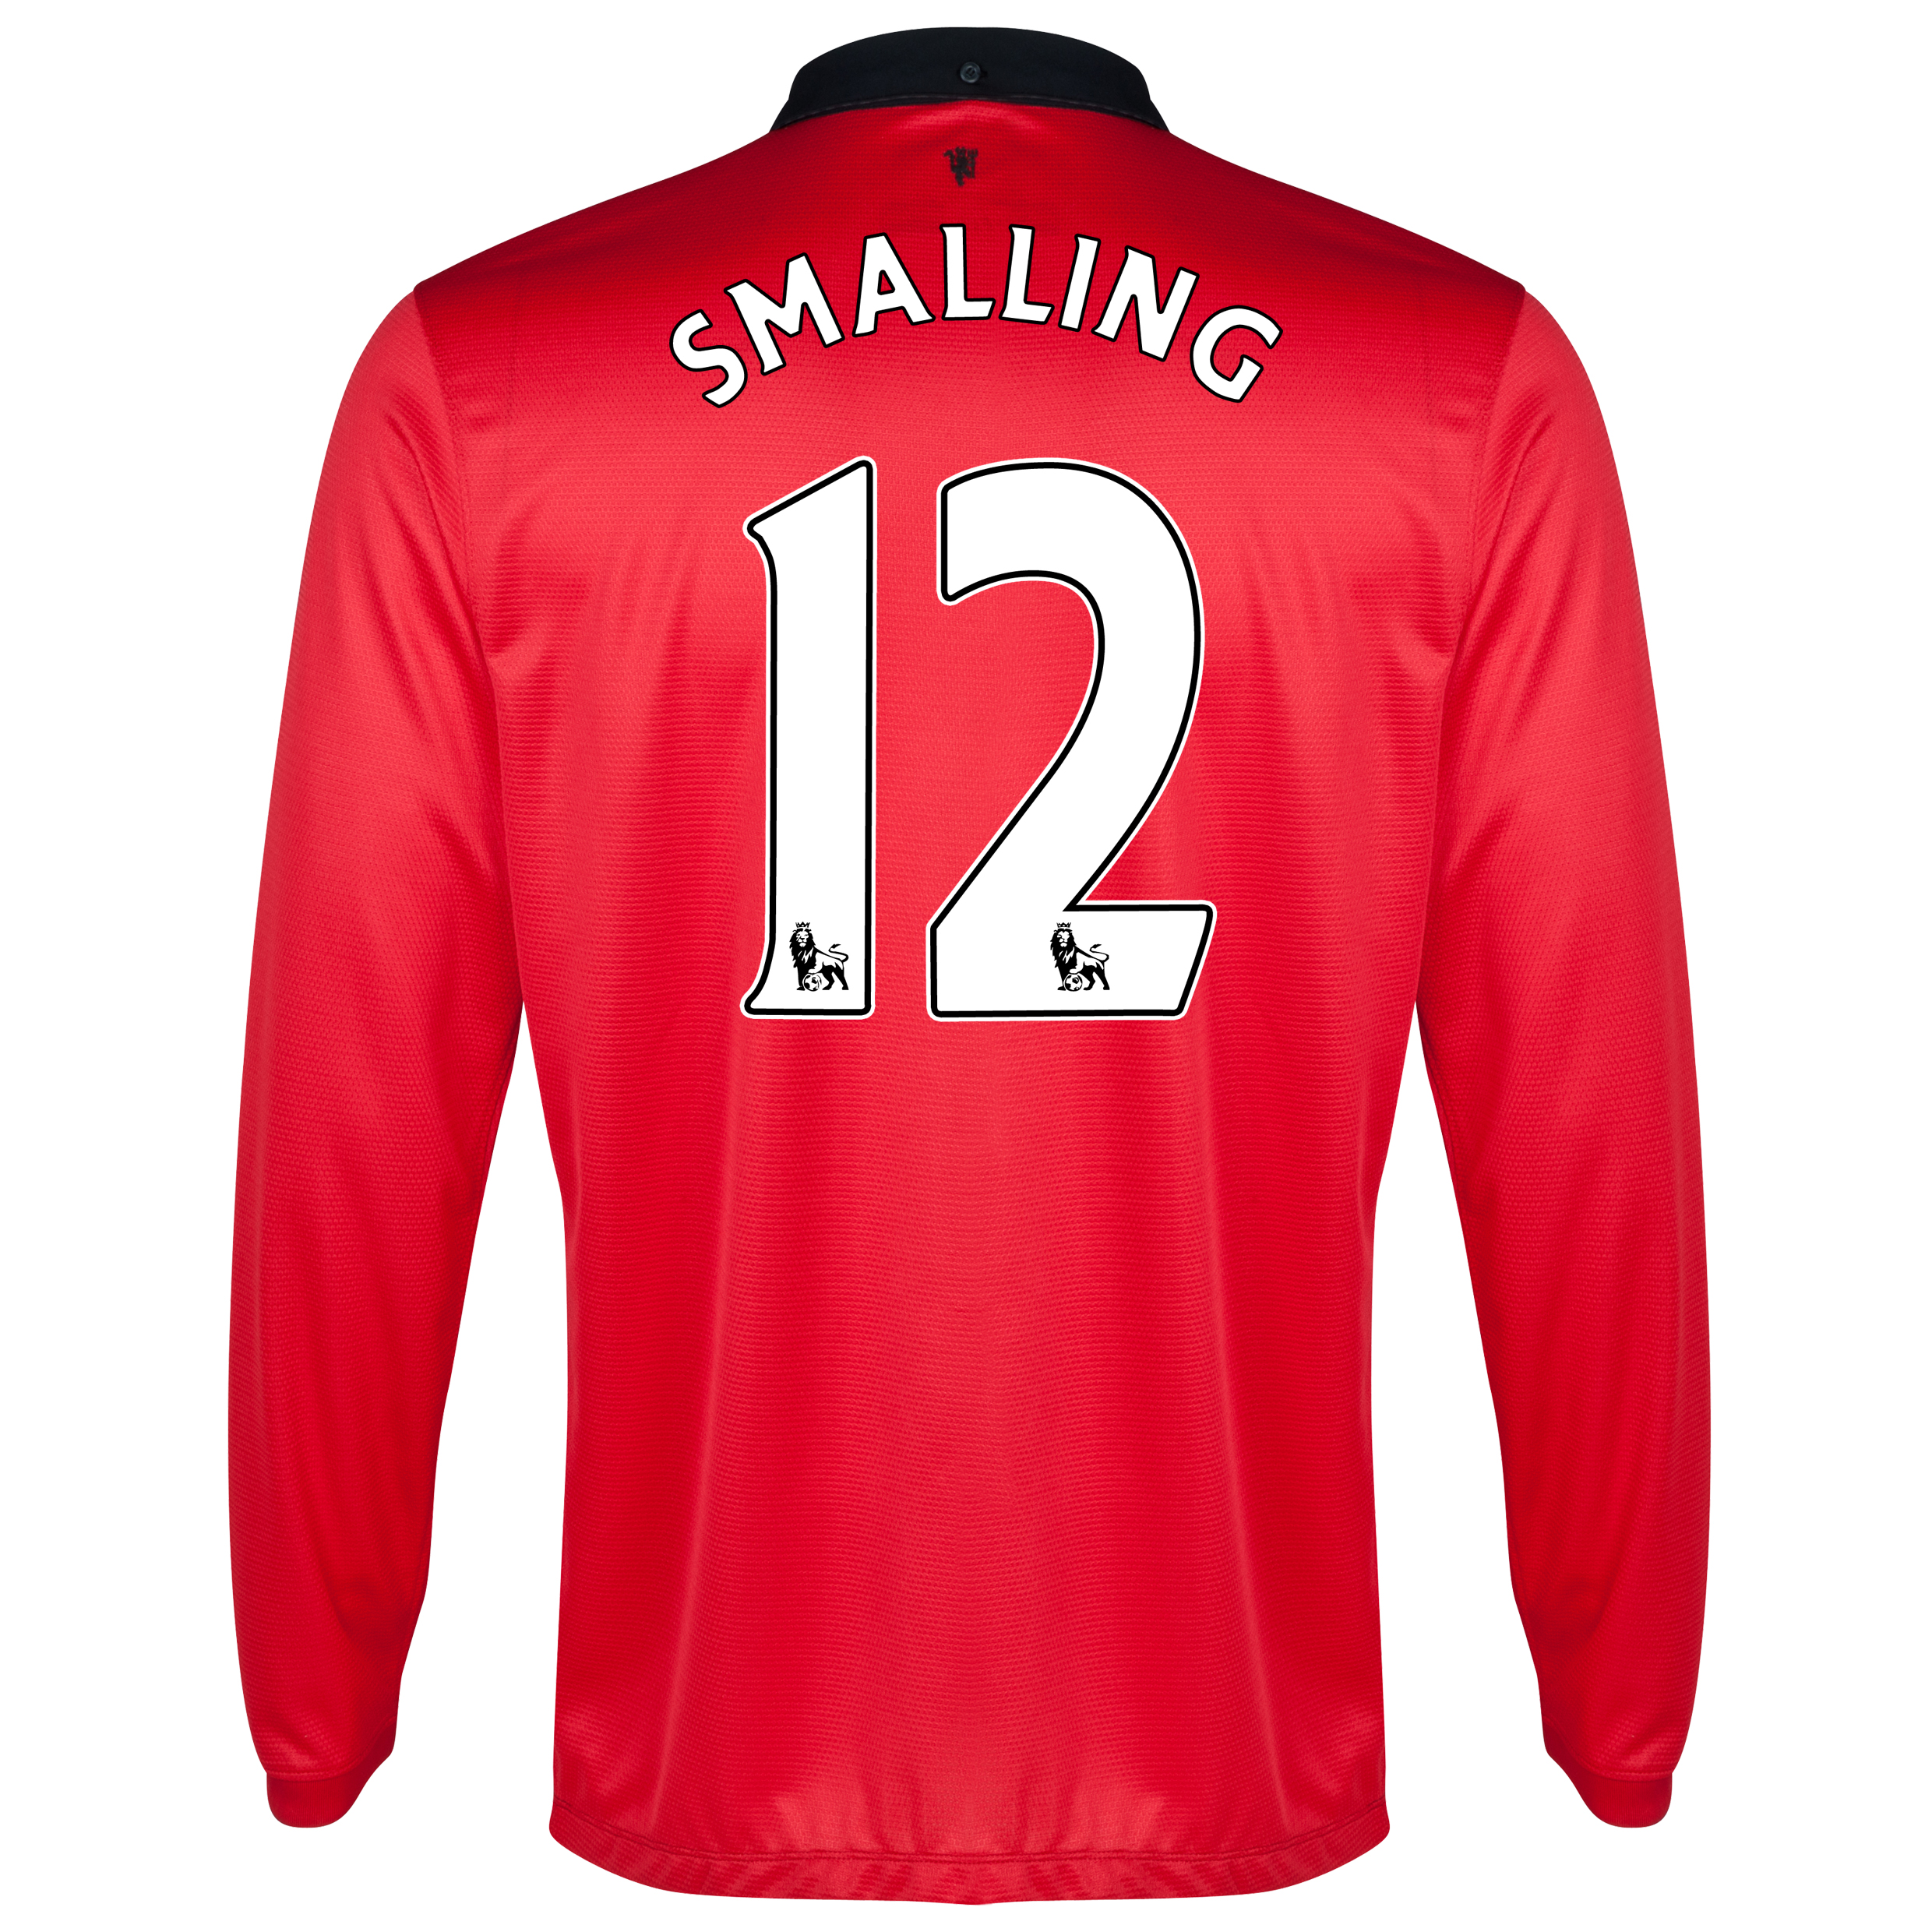 Manchester United Home Shirt 2013/14 - Long Sleeved - Kids with Smalling 12 printing